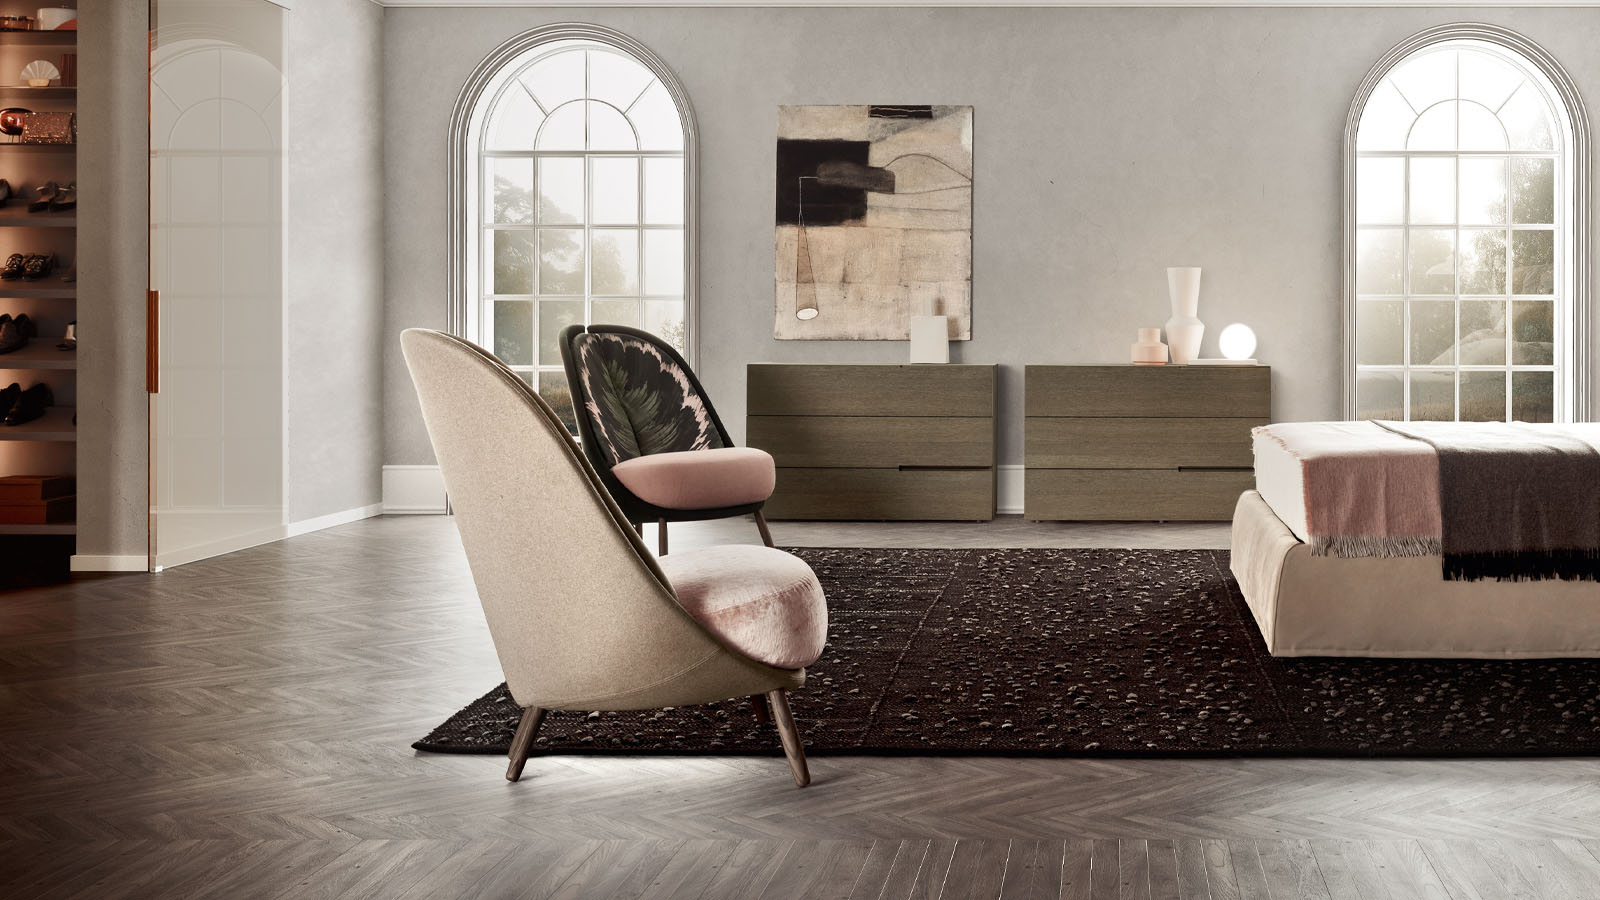 Pianca Within Draco Armchairs (View 11 of 15)